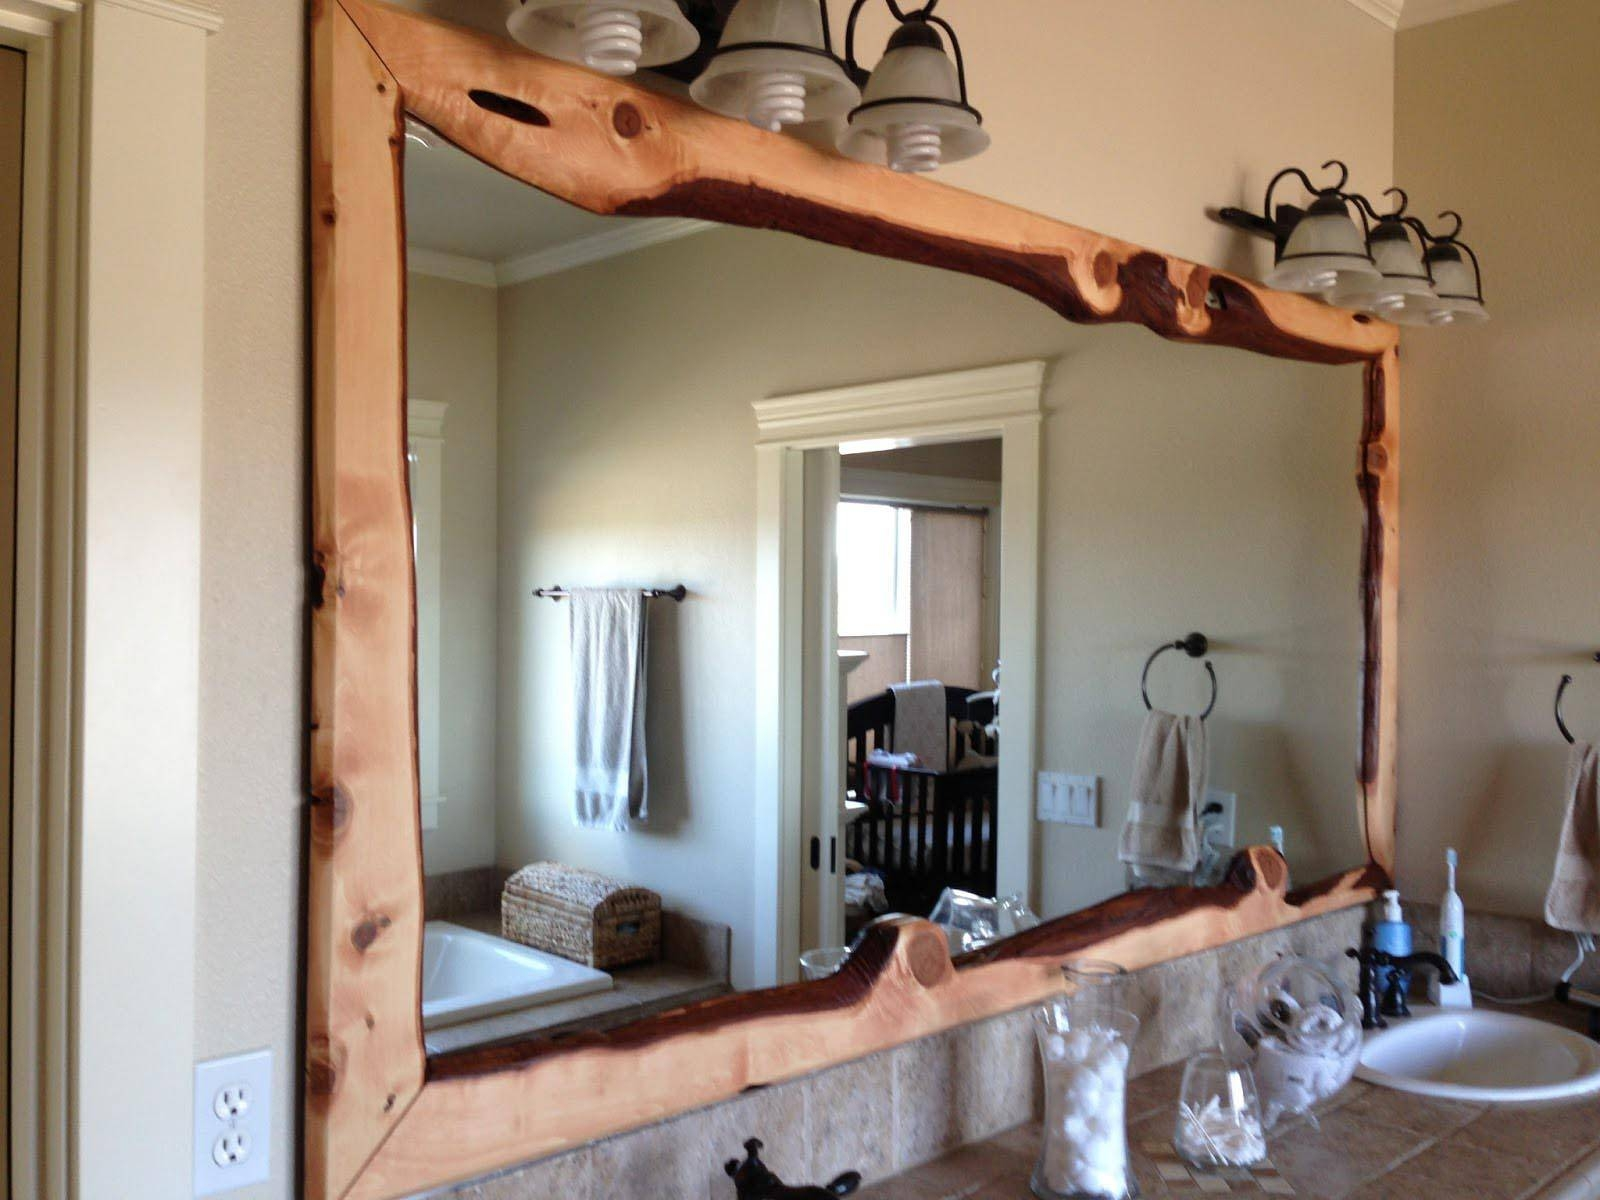 Large Mirror Handmade Oak Frame Traditional Rustic Wood Handmade within Rustic Oak Framed Mirrors (Image 10 of 15)